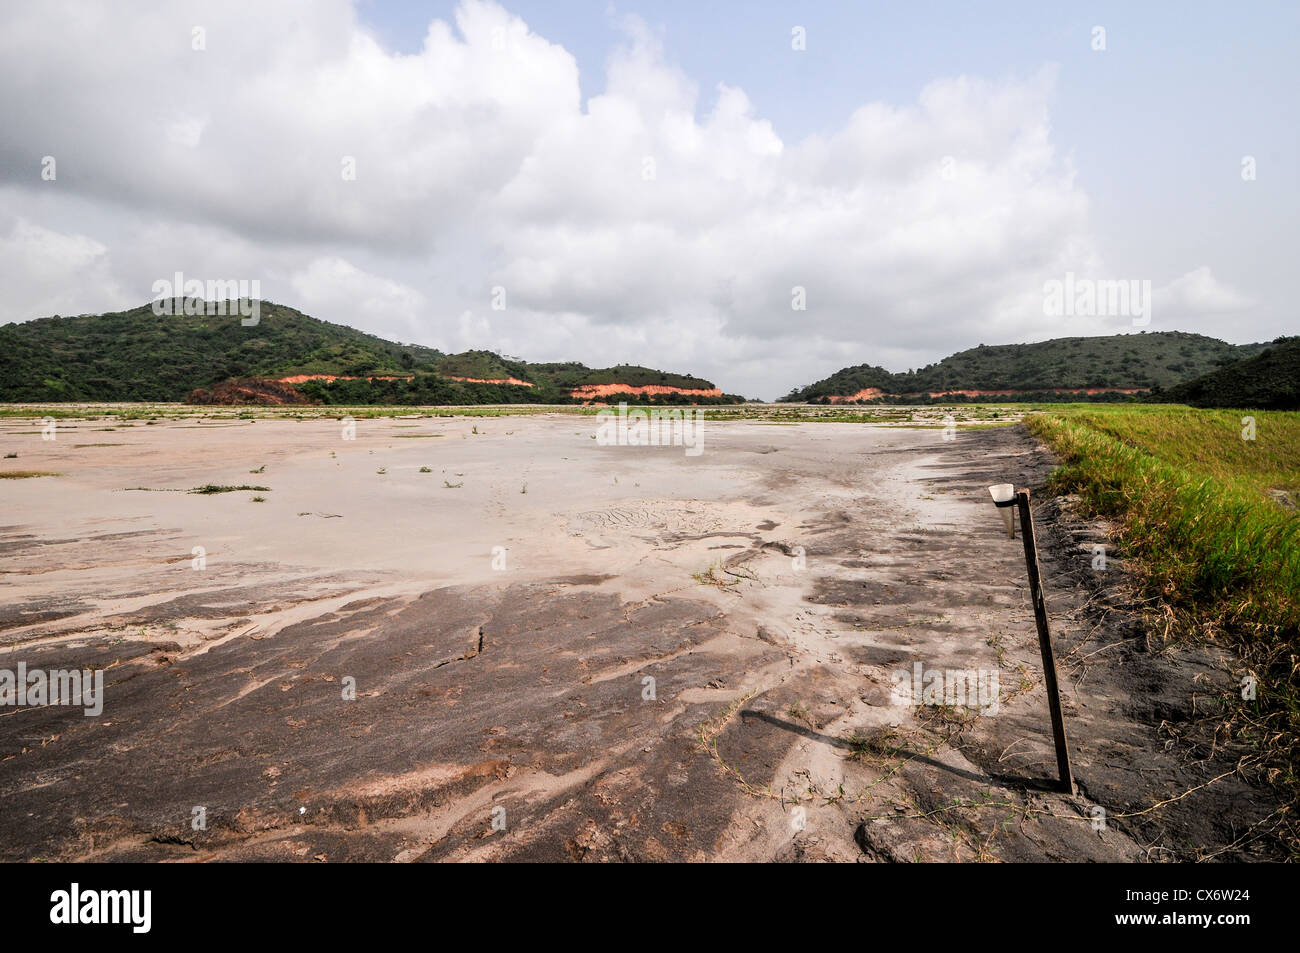 Filled Tailings Pond in Ghanaian Mining Operation - Stock Image